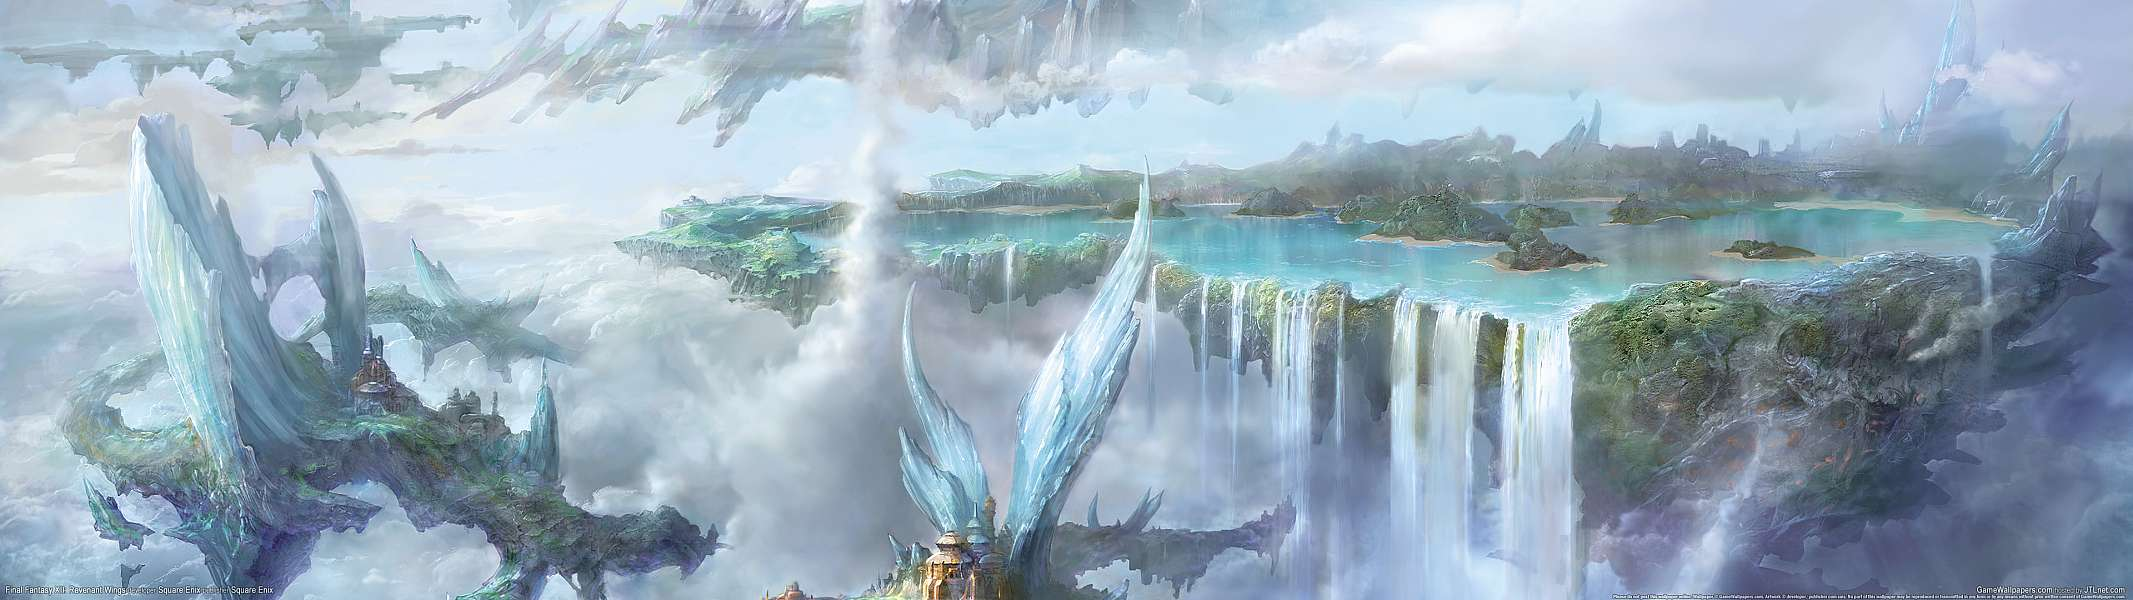 Final Fantasy 12: Revenant Wings dual screen wallpaper or background